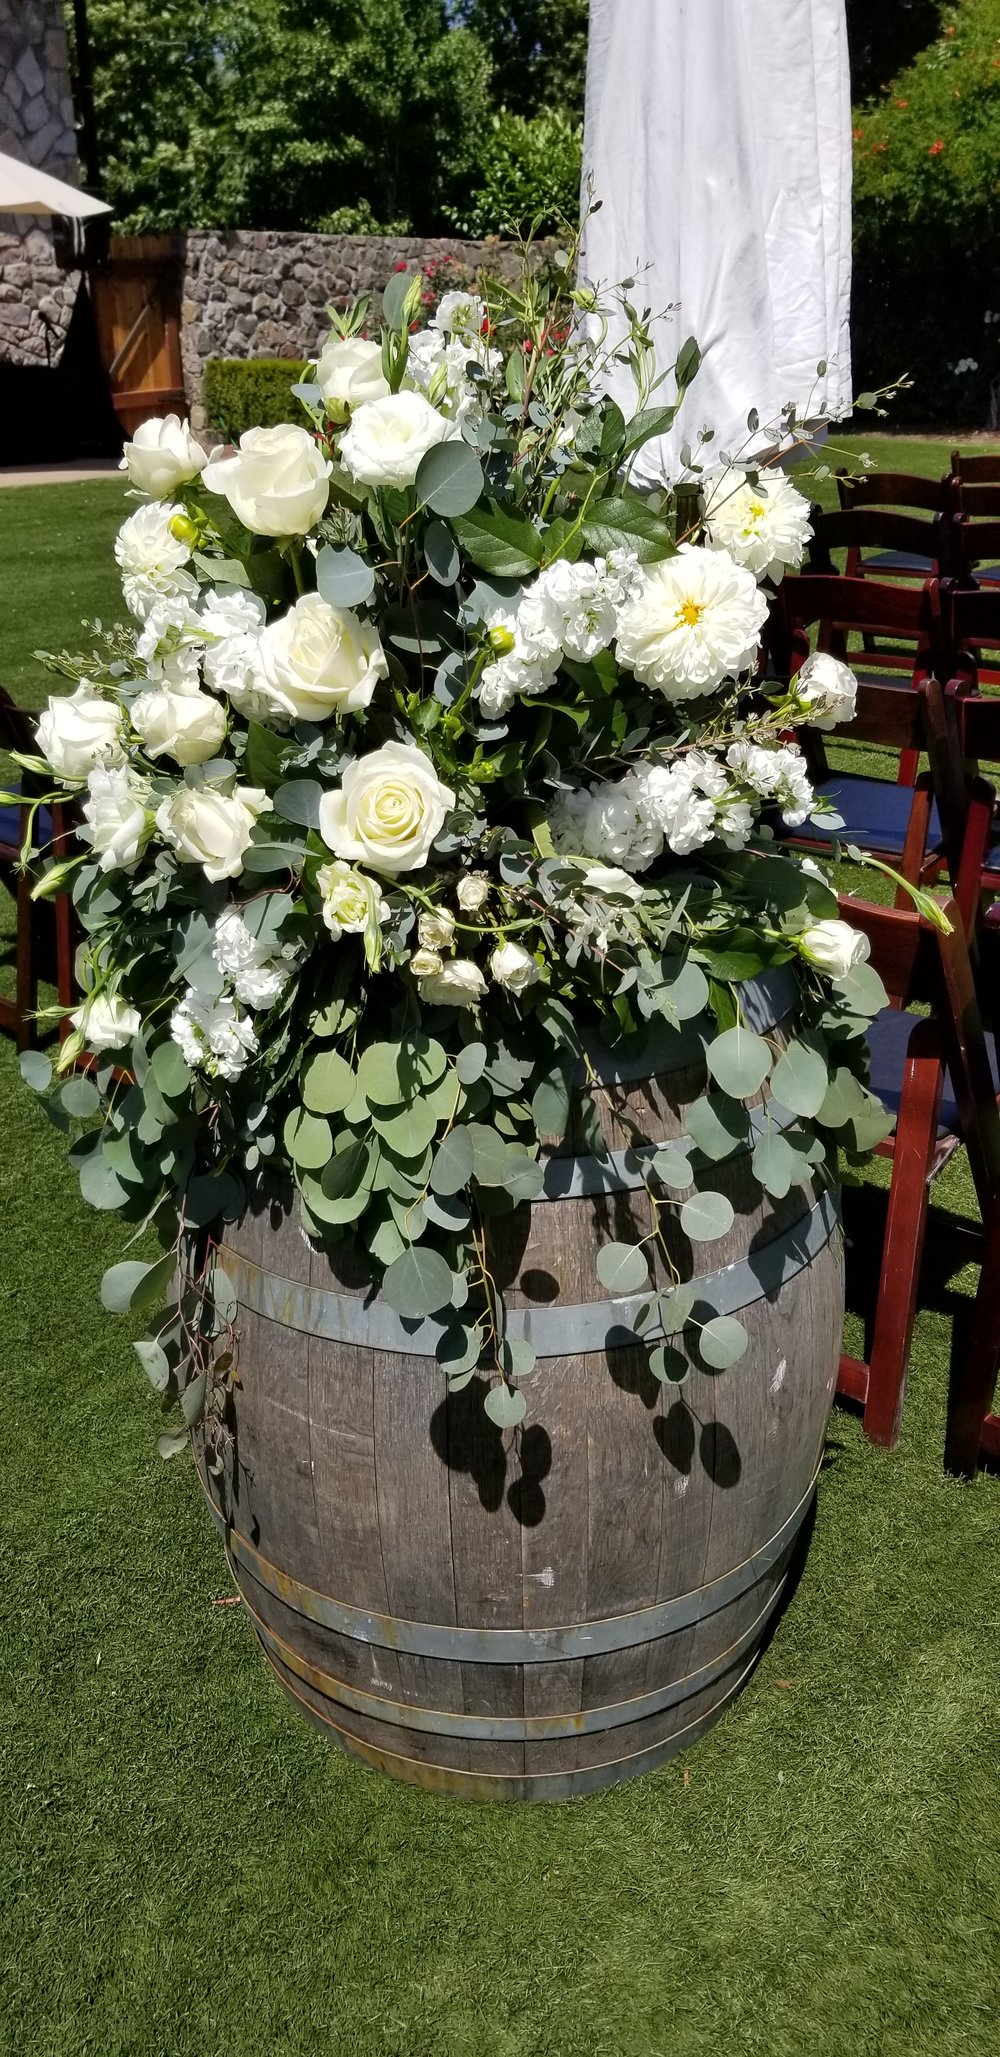 2018 Petal Town Wine Barrel Flowers hanging greens.jpg